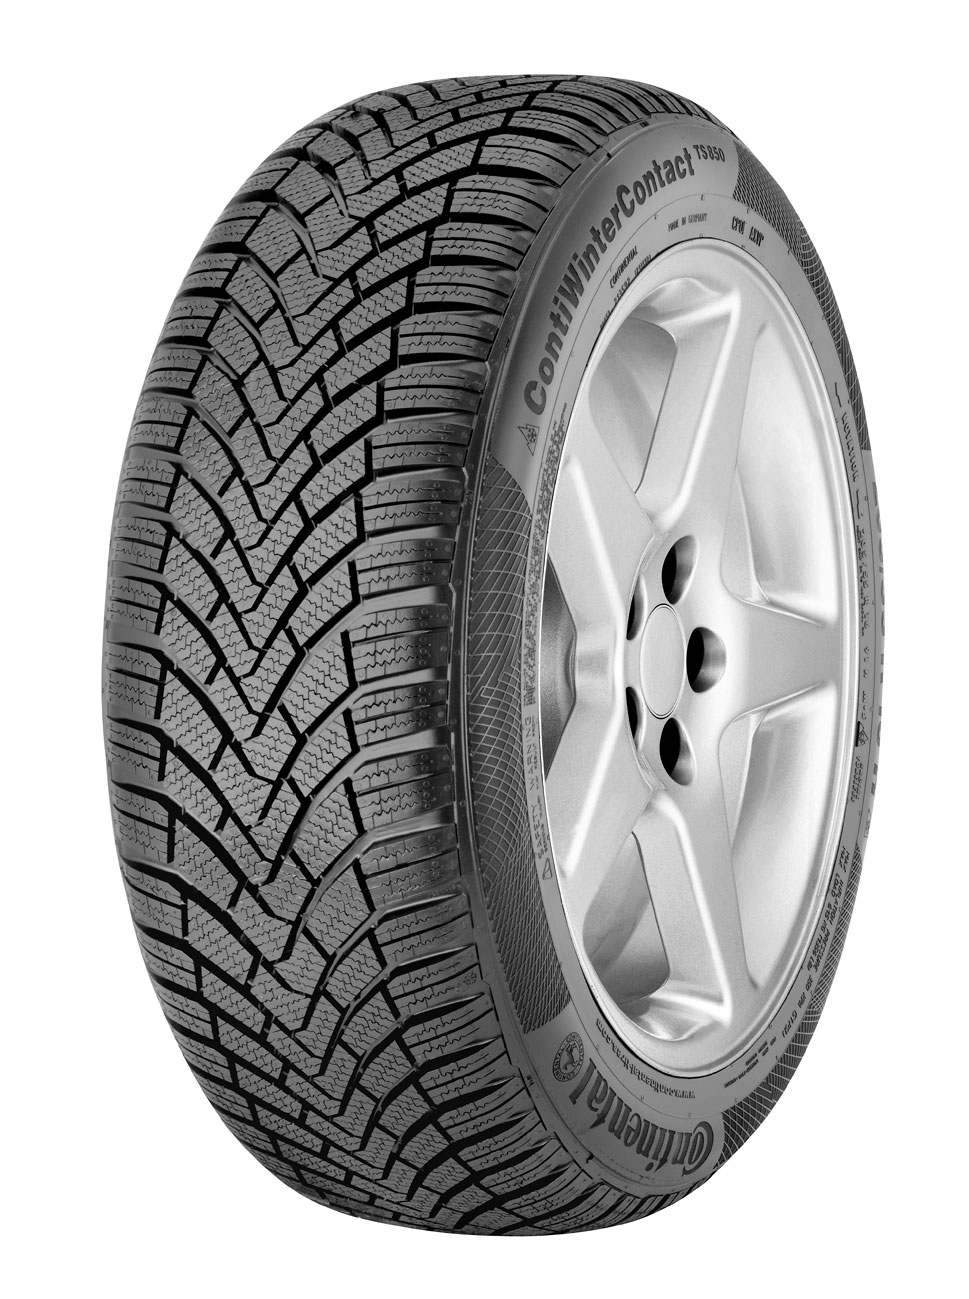 Шины Continental ContiWinterContact TS 850 165/60 R14 79T